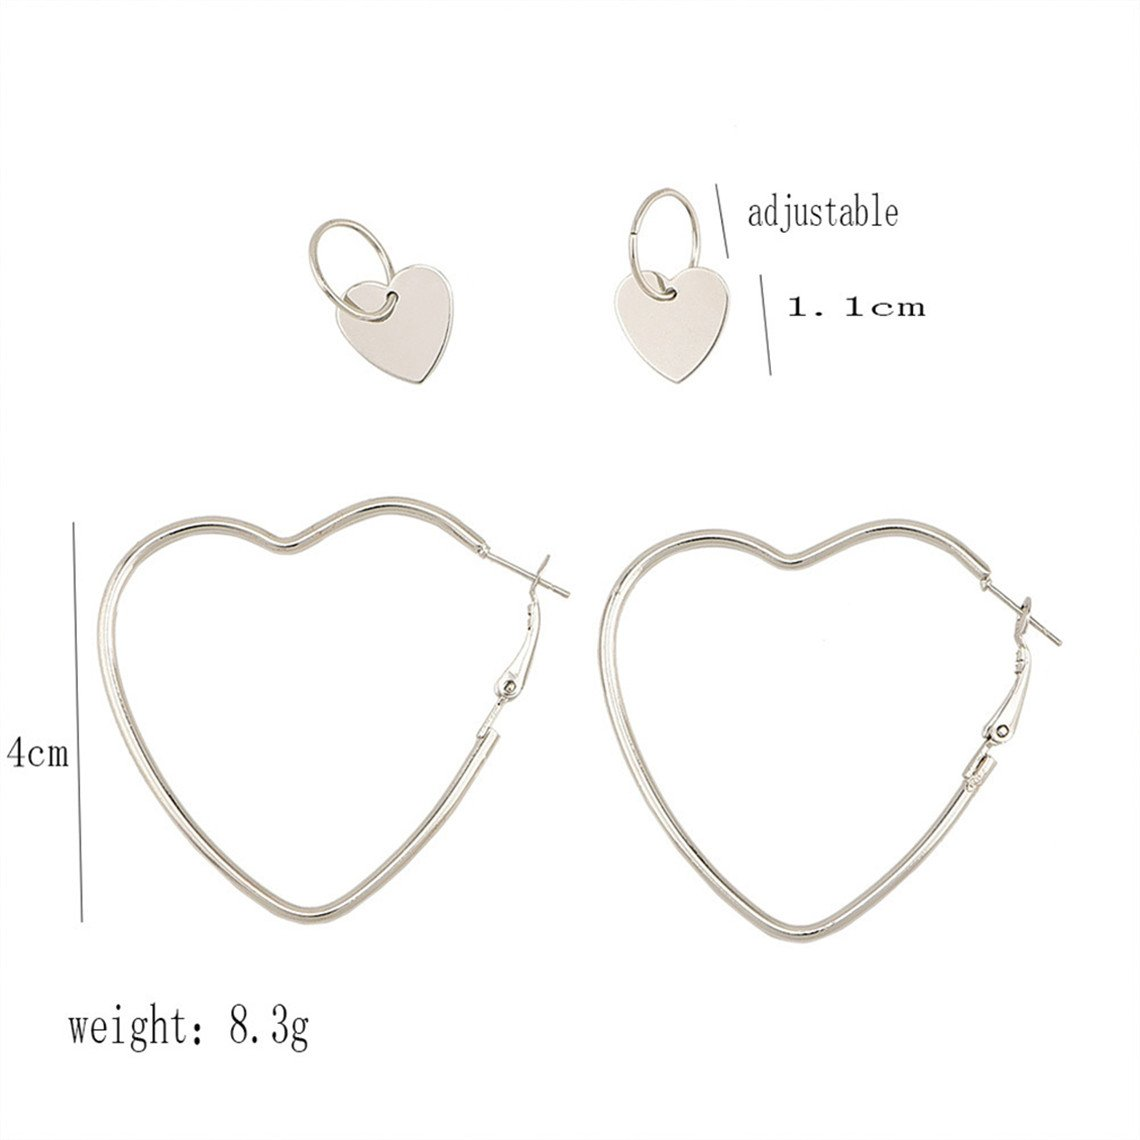 Rurah Women's Heart Shape Large Hoop Earring and Small Love Heart Earring Set